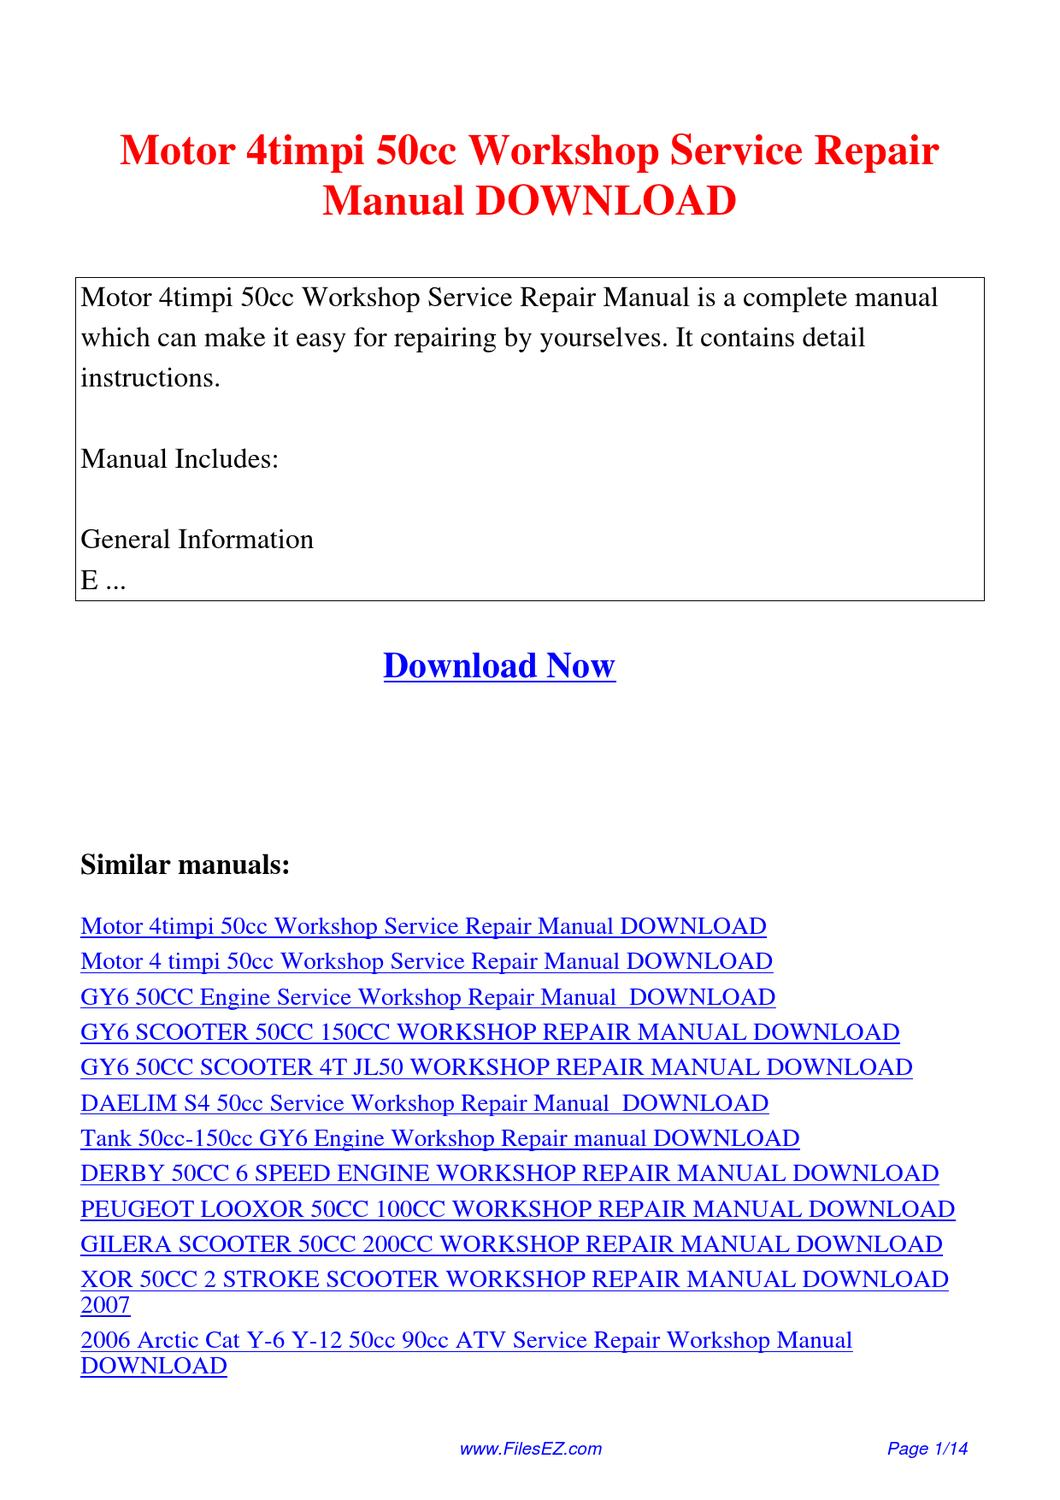 Motor 4timpi 50cc Workshop Service Repair Manual By Yang